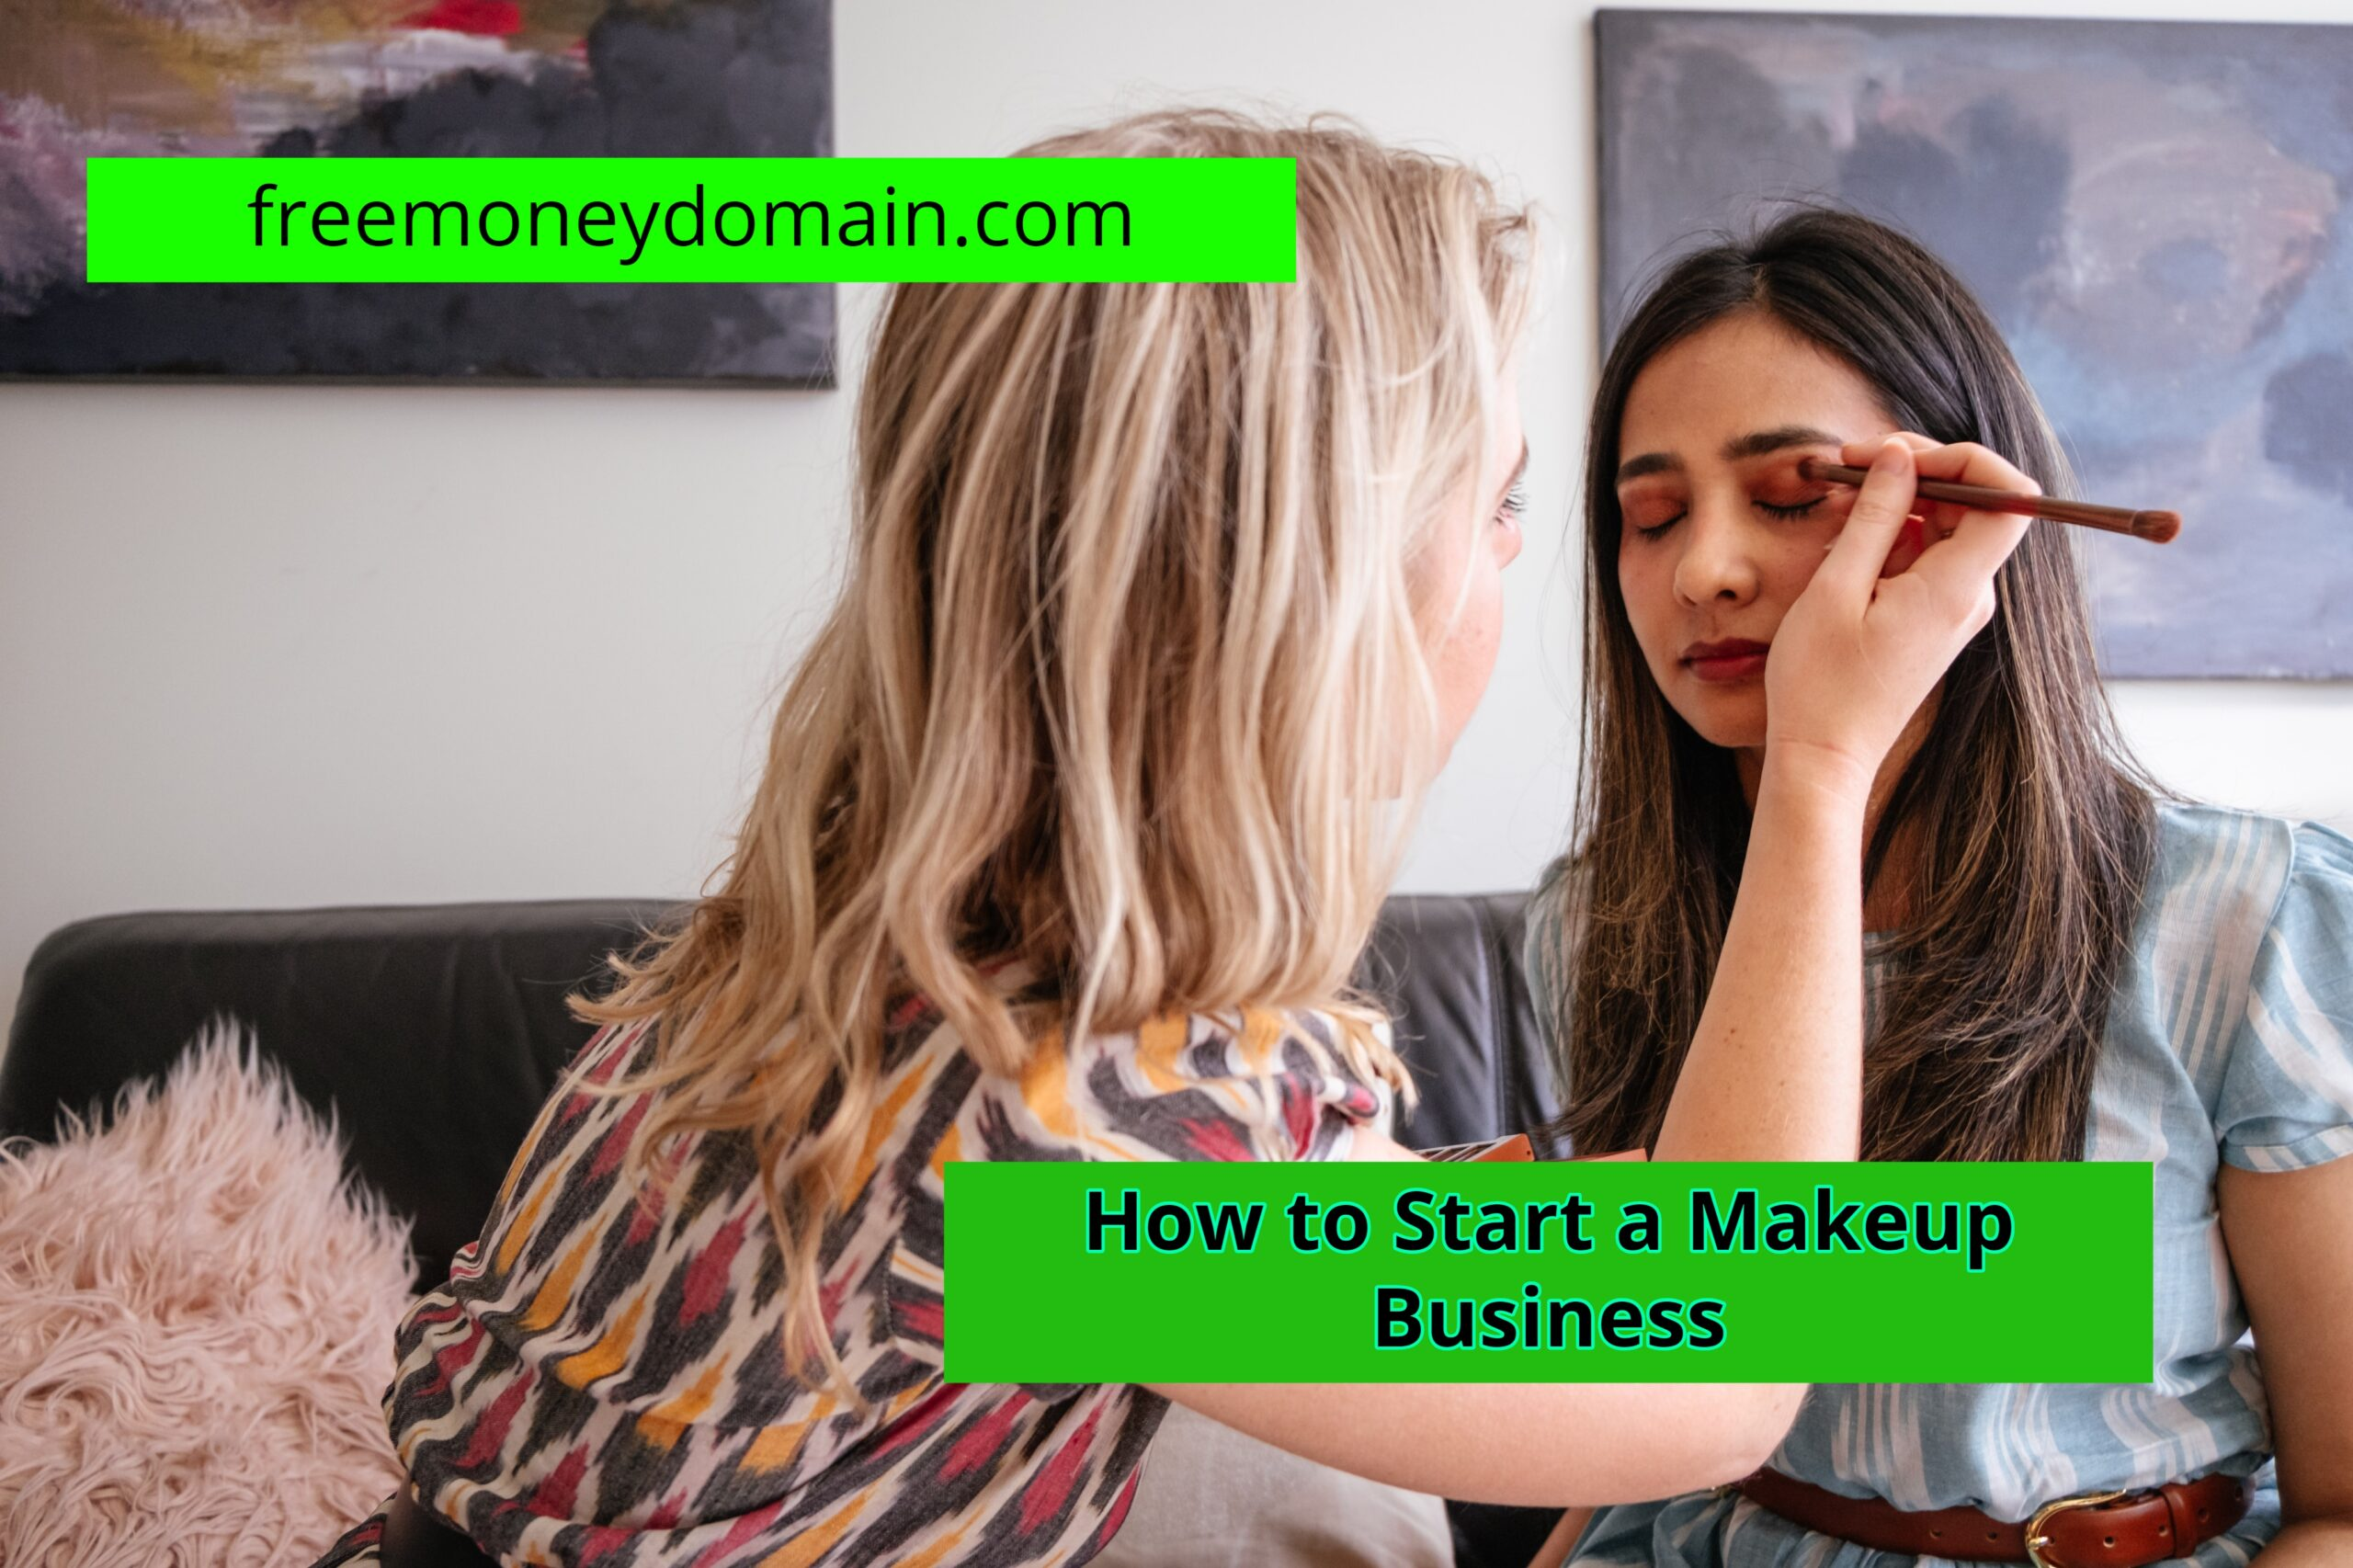 How to Start a Makeup Business in 2021